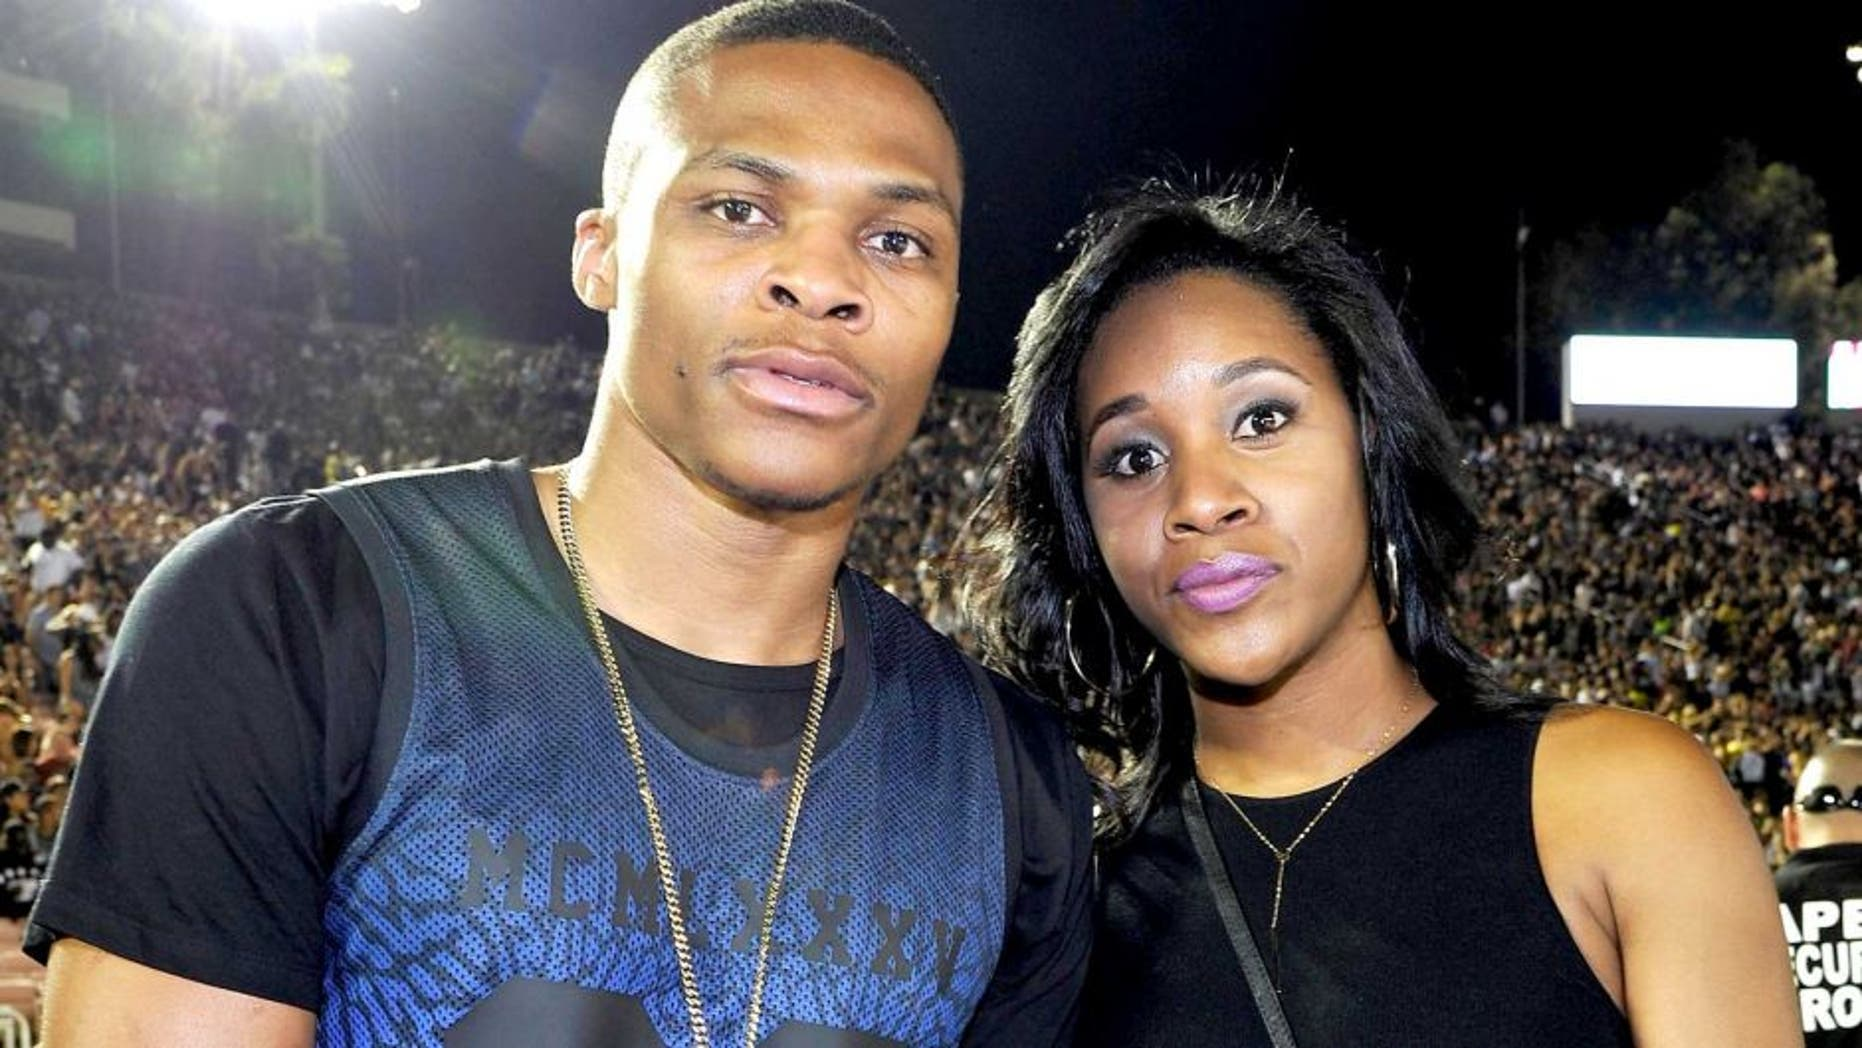 "PASADENA, CA - AUGUST 02: (L-R) Russell Westbrook and Nina Earl attend D'USSE VIP riser and lounge at ""On The Run Tour"" at Rose Bowl on August 2, 2014 in Pasadena, California. (Photo by John Sciulli/Getty Images for D'USSE)"